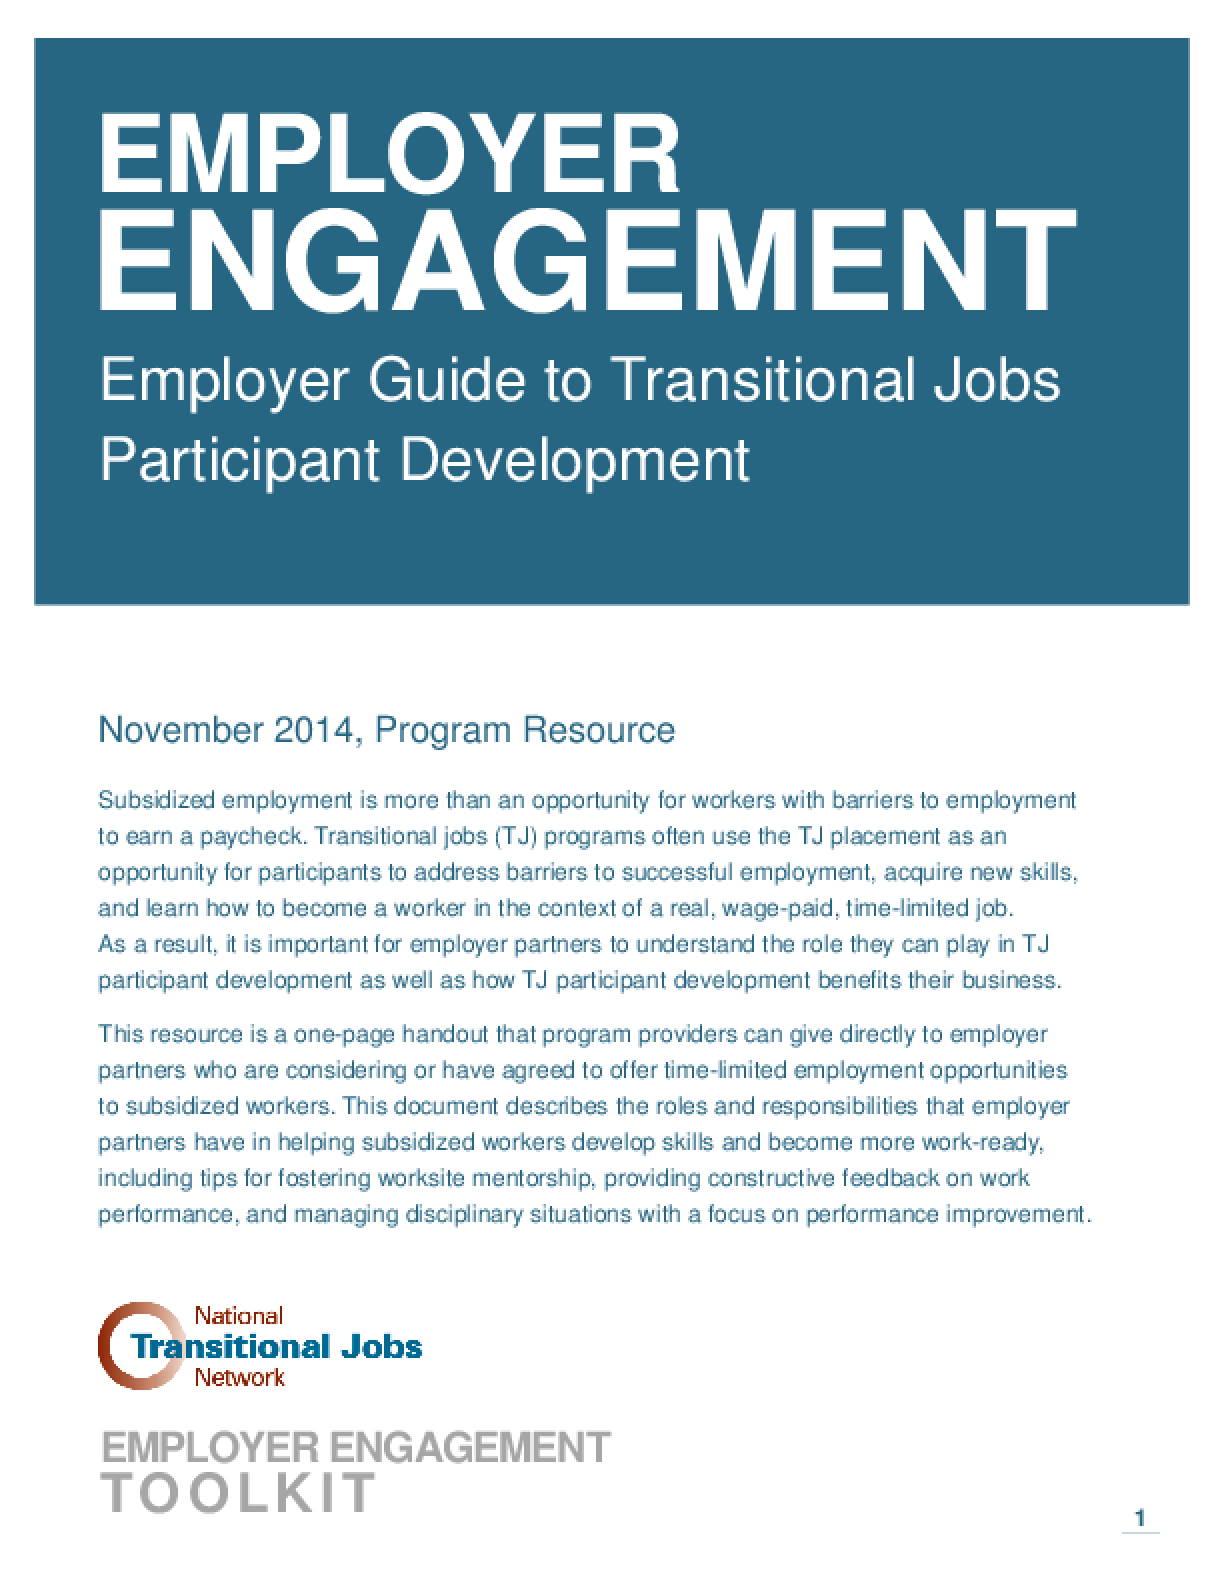 Employer Engagement: Employer Guide to Transitional Jobs Participant Development